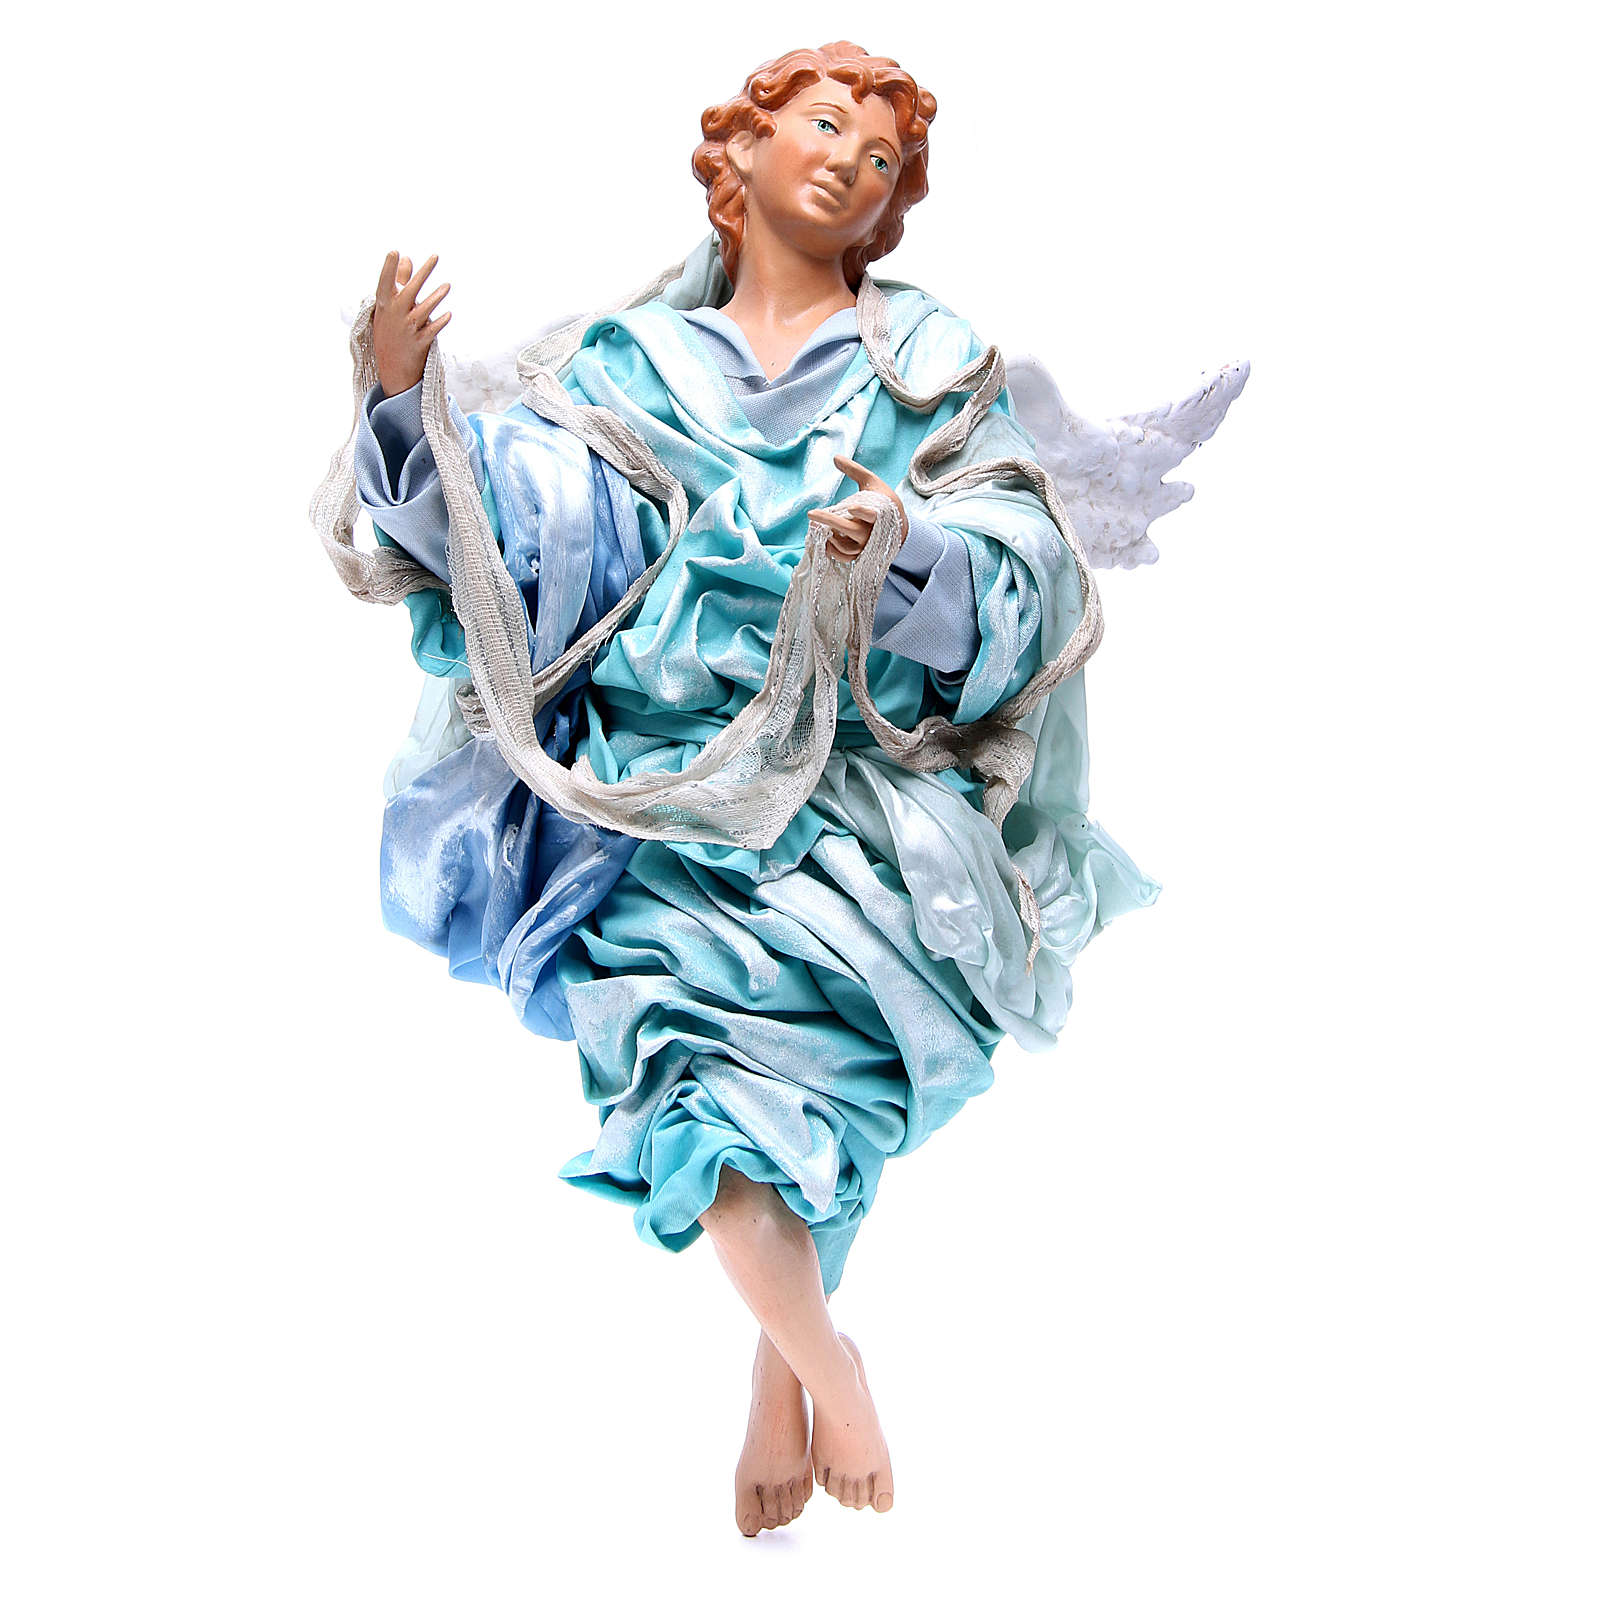 Blonde angel with light blue clothes, figurine for Neapolitan Nativity, 45cm 4